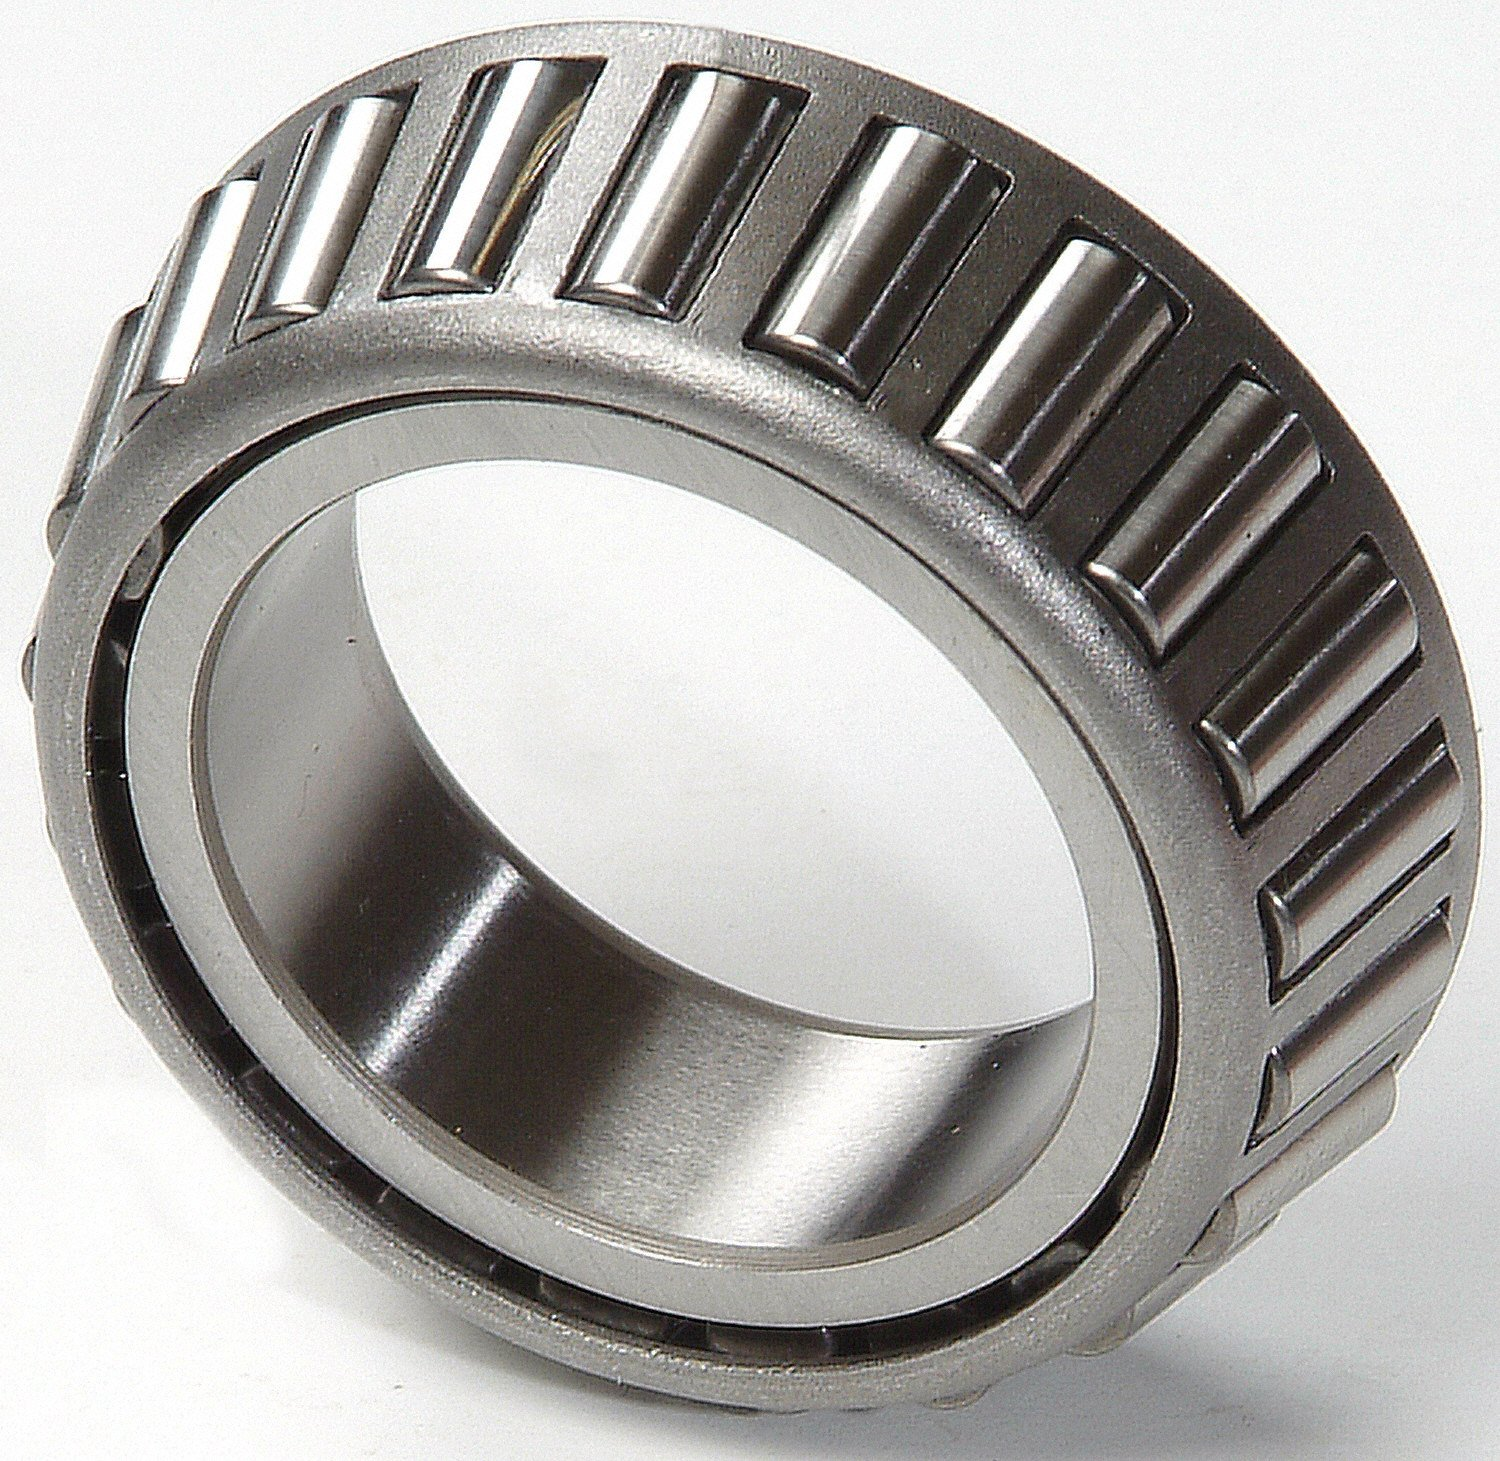 National M86649 Tapered Bearing Cone